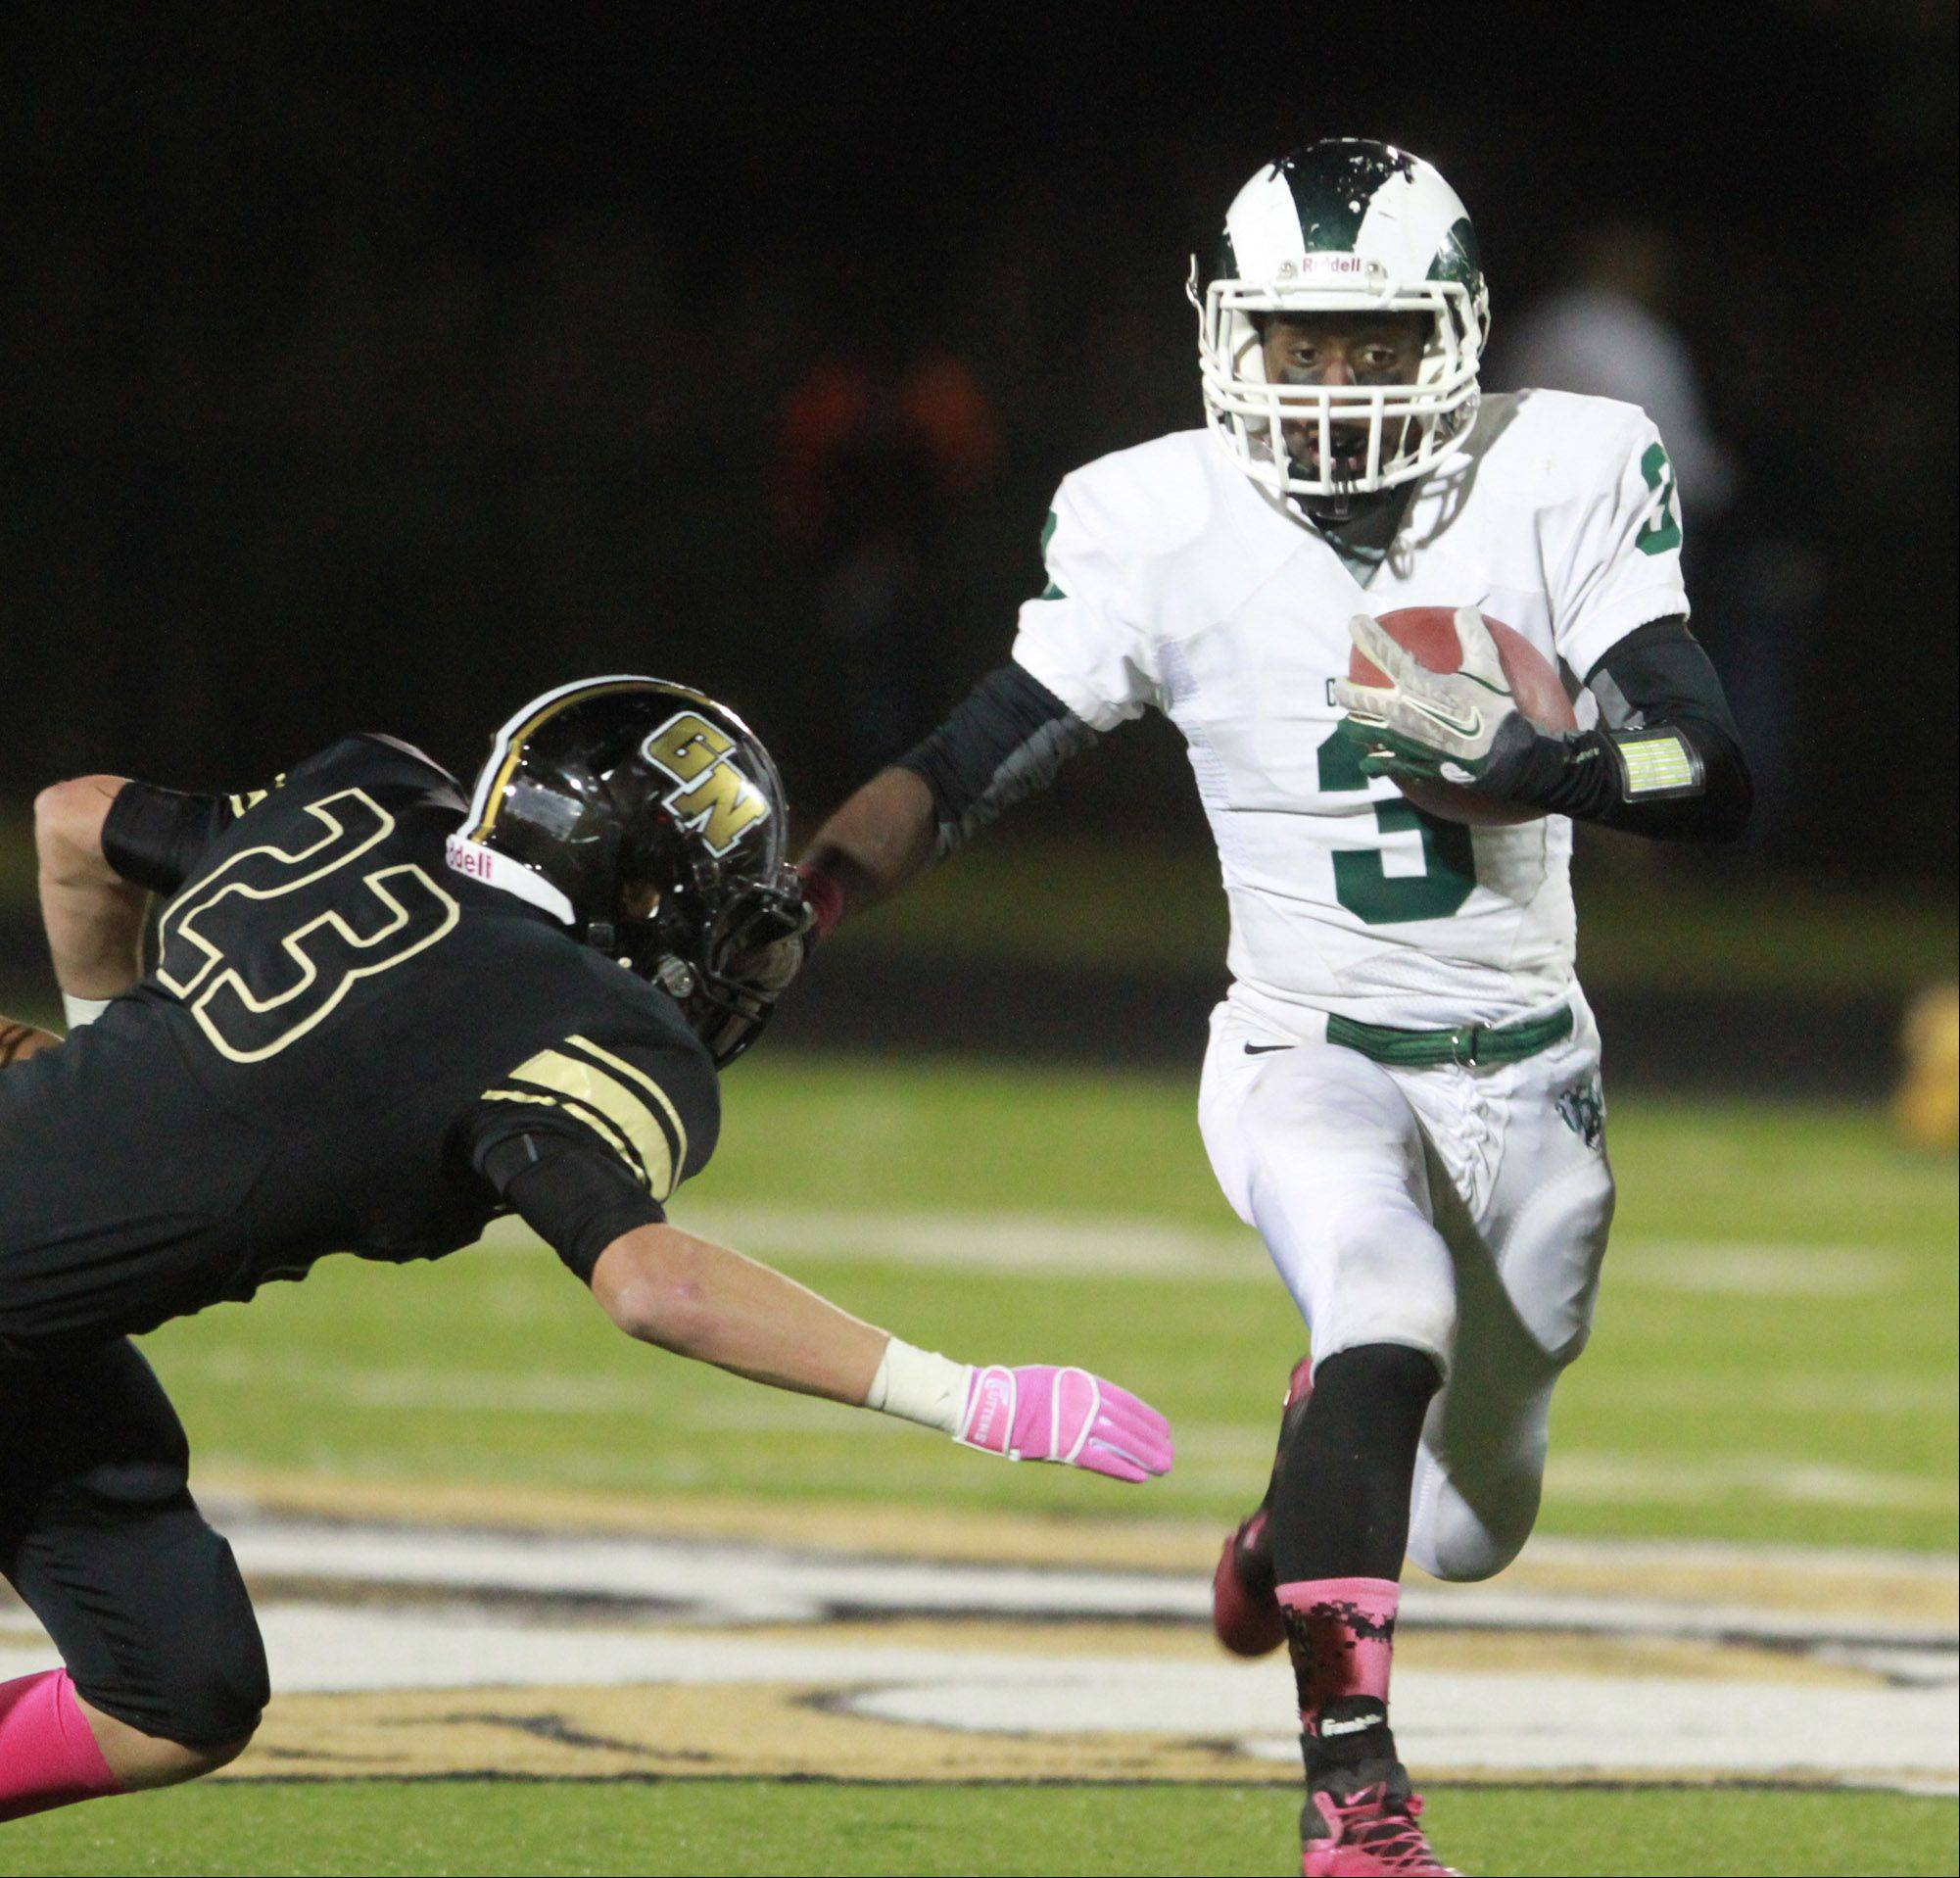 Grayslake Central running back Davonta Jennings looks to runs past Grayslake North defender Spencer Davis.